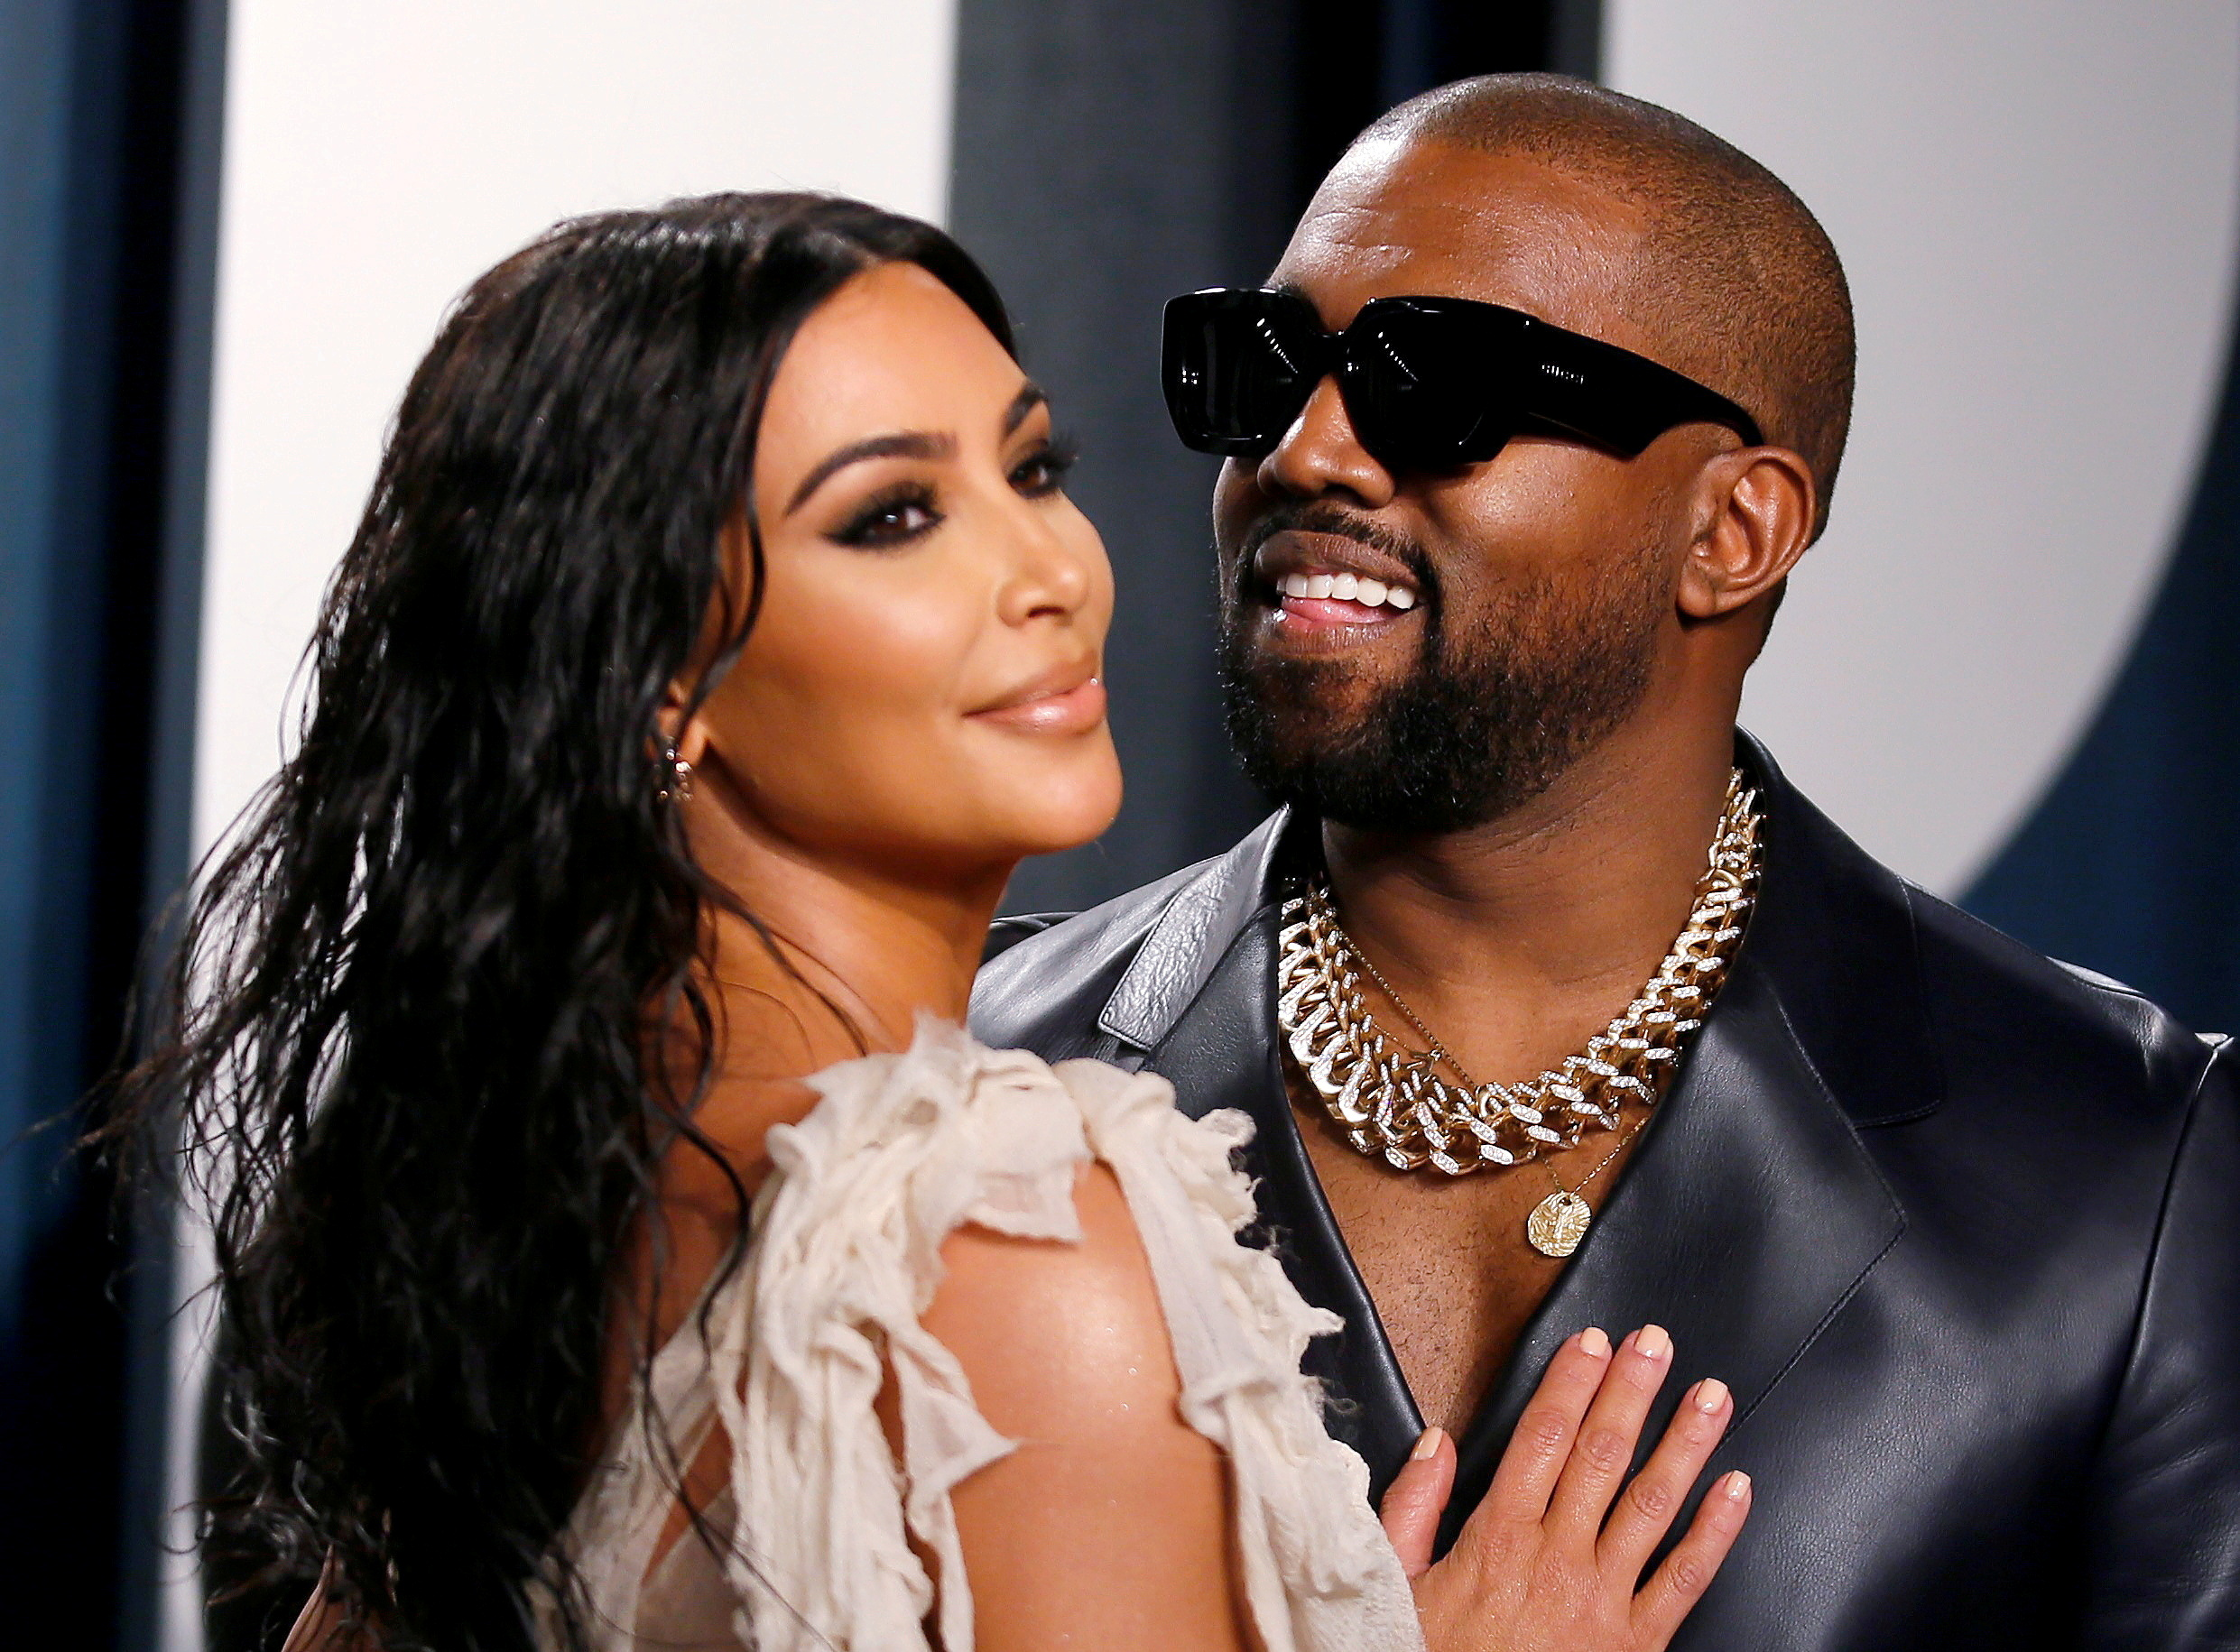 Kim Kardashian and Kanye West attend the Vanity Fair Oscar party in Beverly Hills during the 92nd Academy Awards, in Los Angeles, California, U.S., February 9, 2020. REUTERS/Danny Moloshok/File Photo